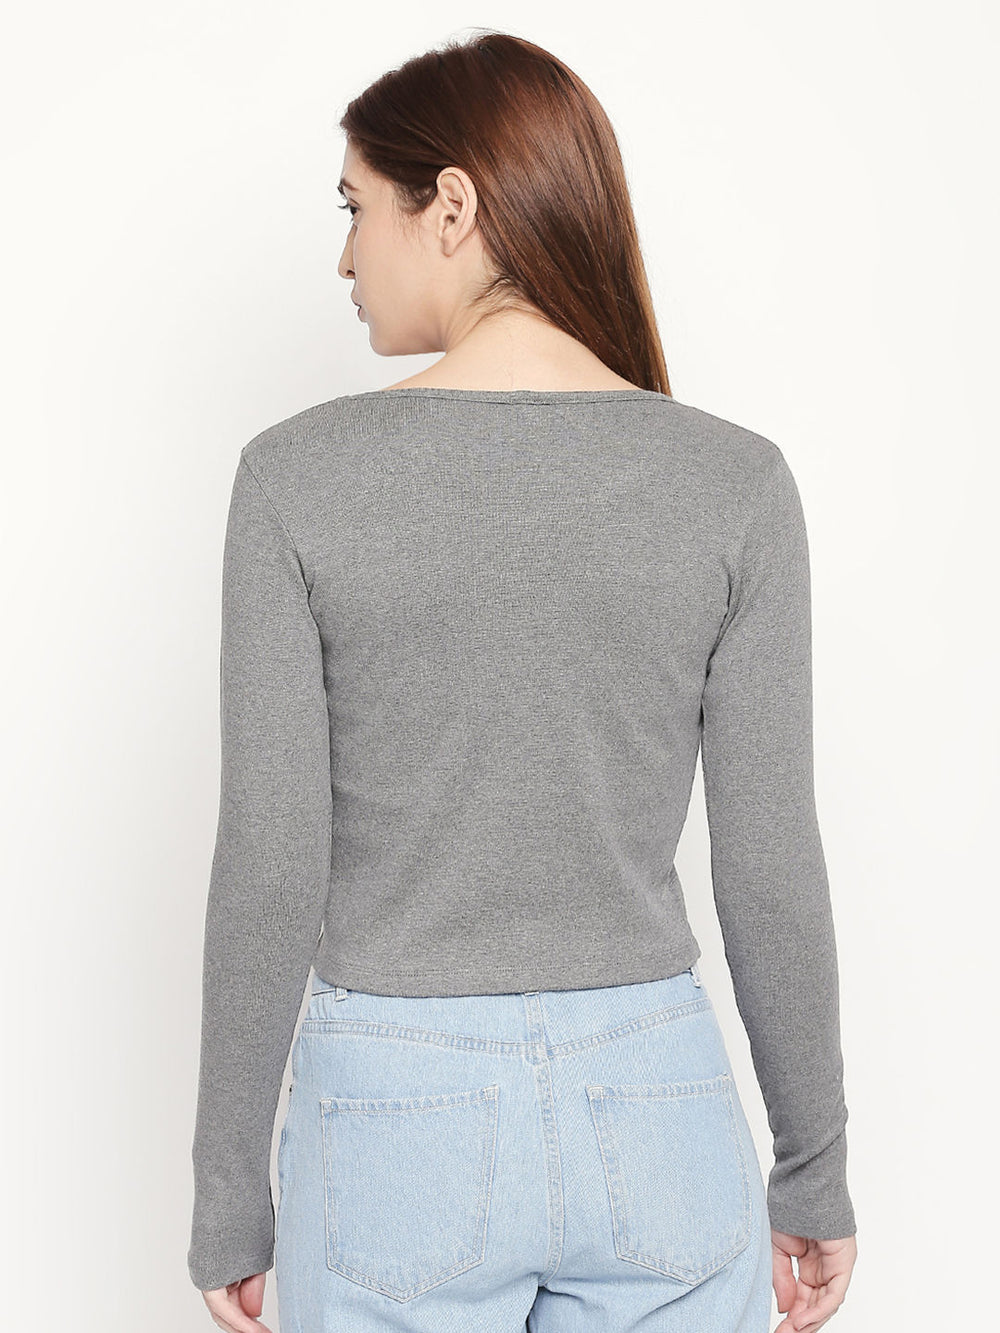 Grey Round Neck Slim Fit Top For Women's